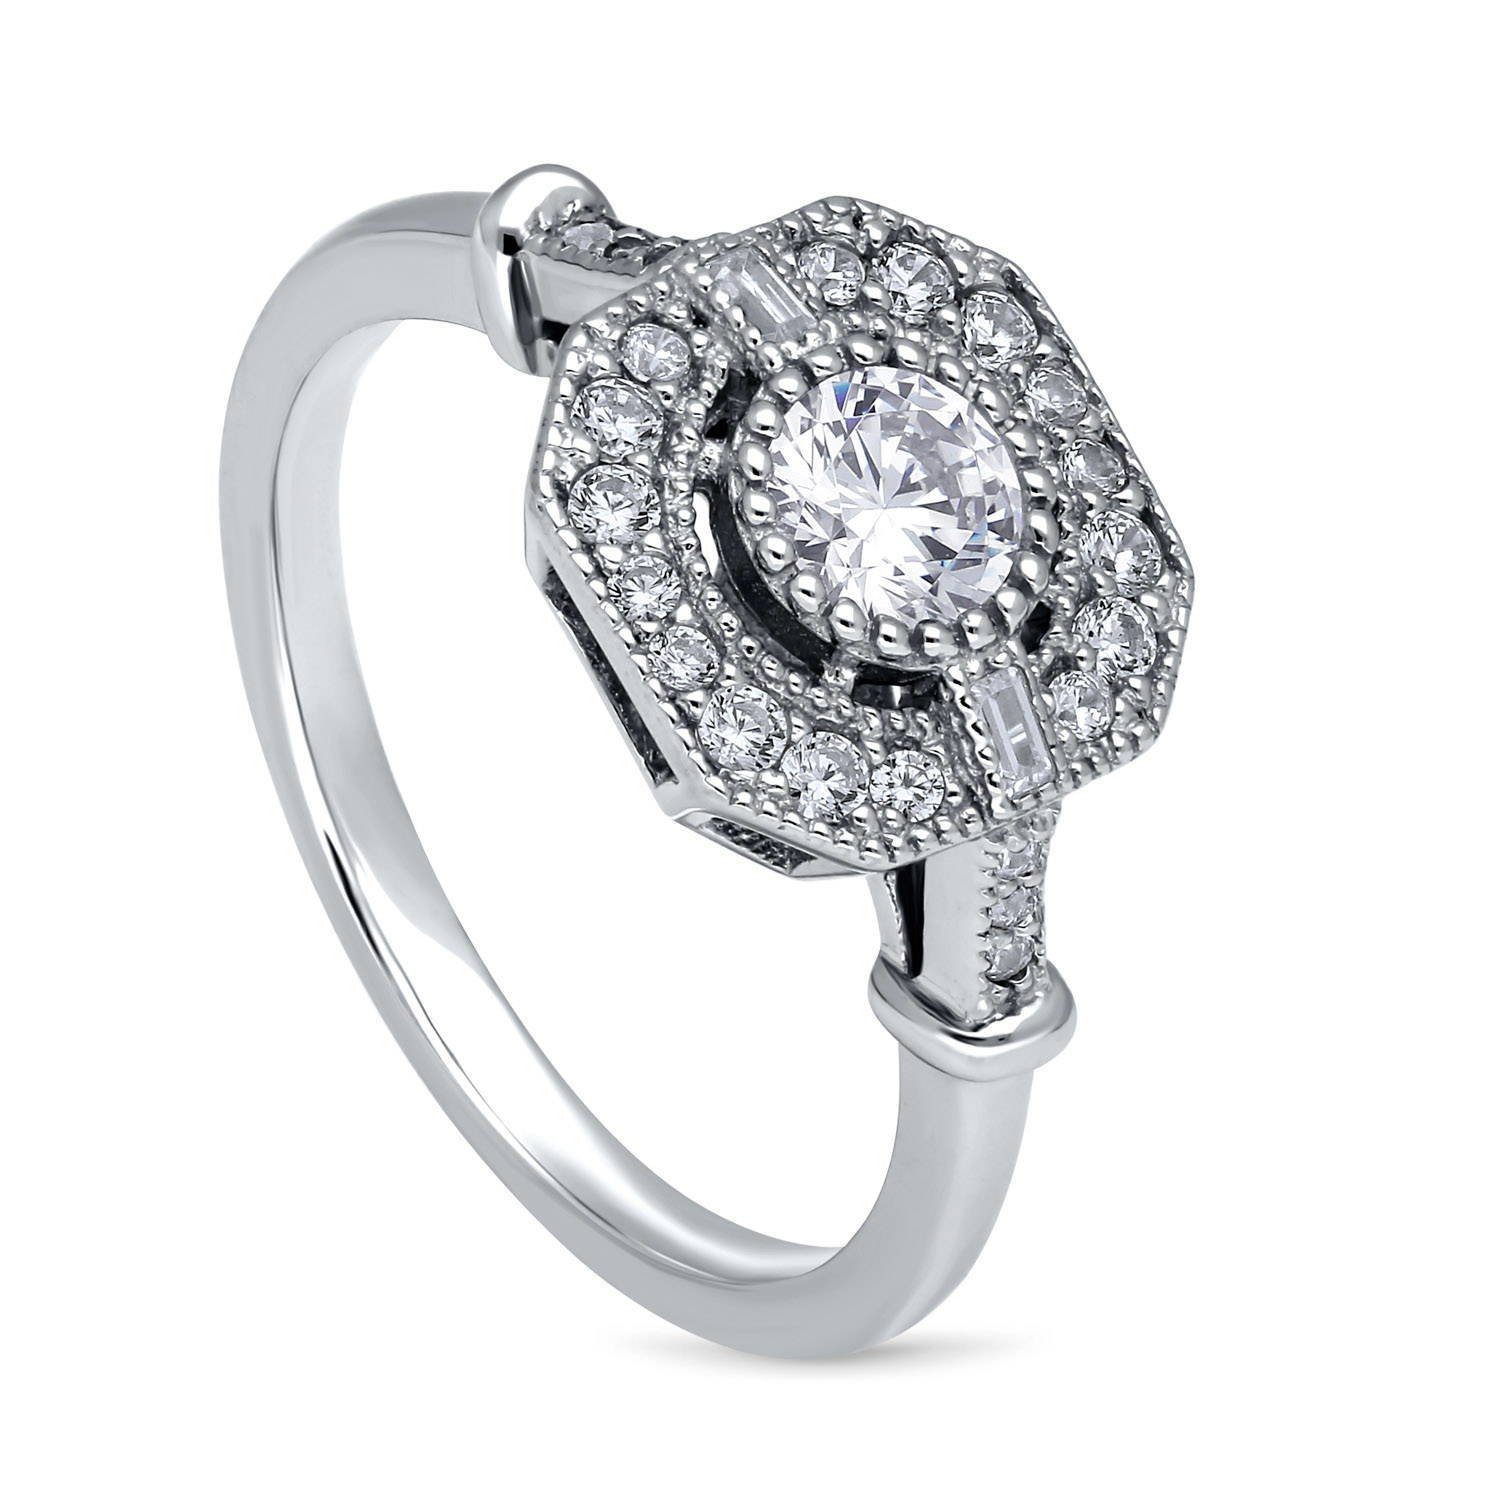 BERRICLE Rhodium Plated Sterling Silver Cubic Zirconia CZ Art Deco Ring Size 8